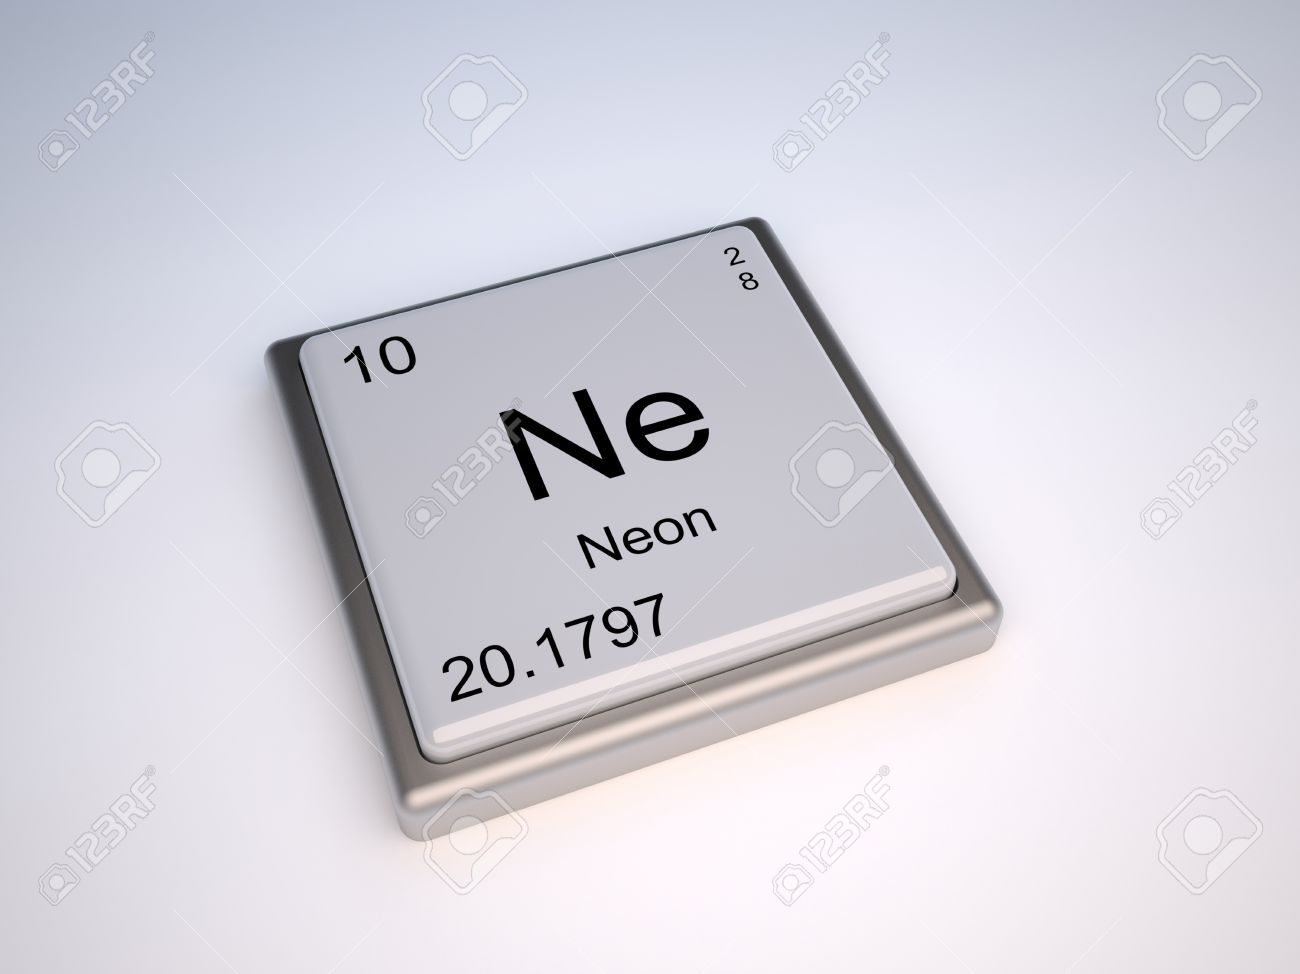 010 Neon Chemical Element Of The Periodic Table With Symbol Ne ...